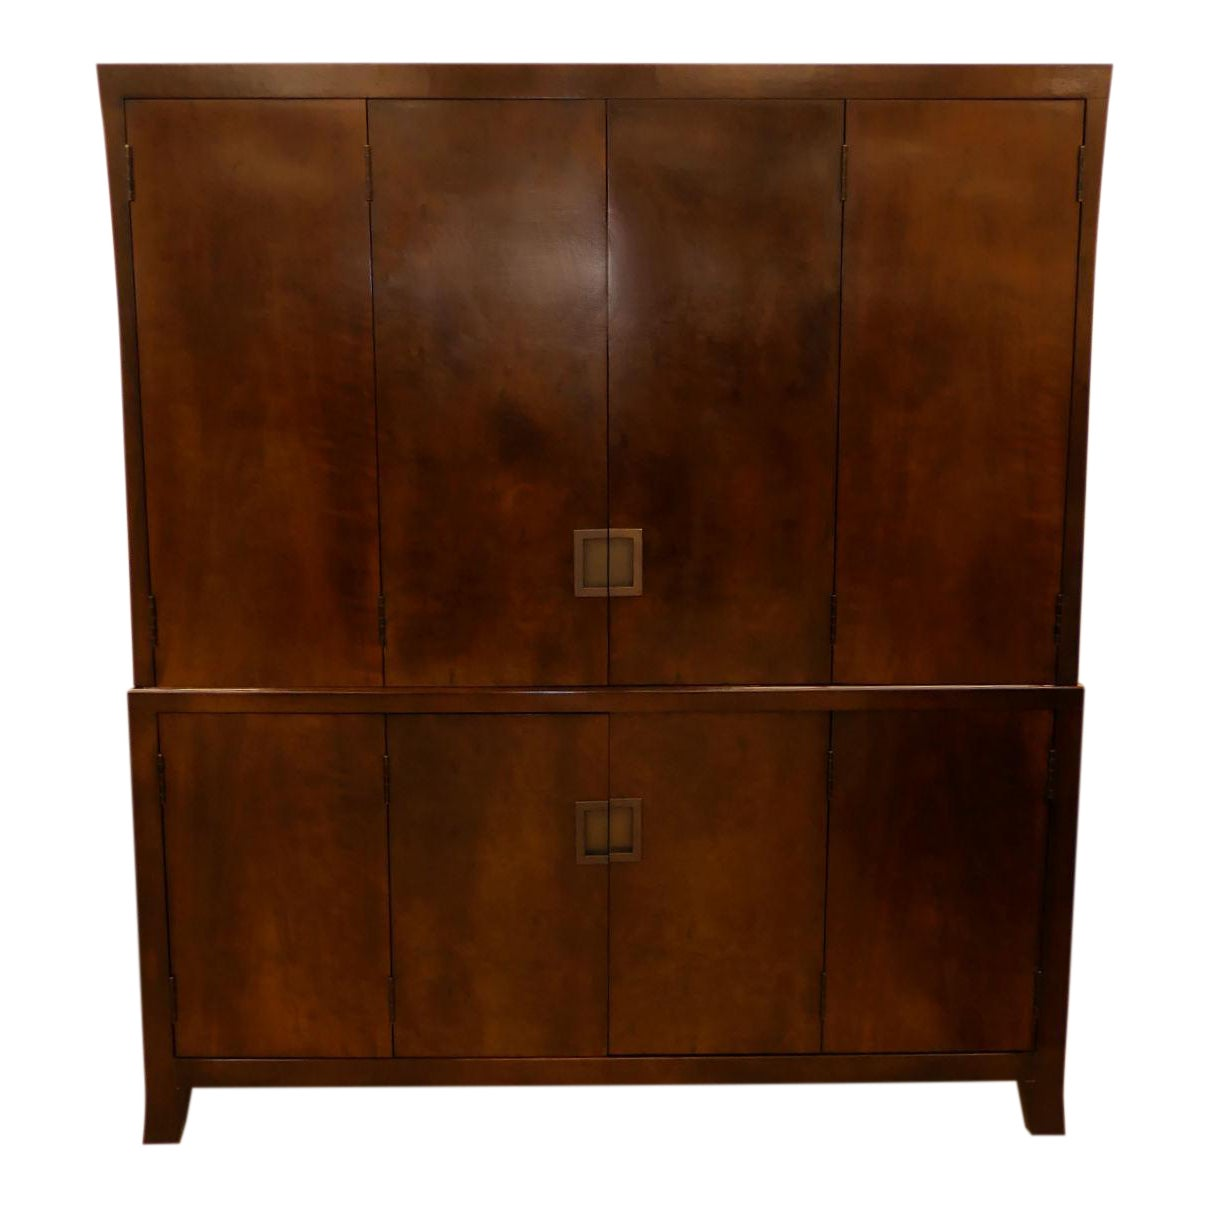 Baker Storage Cabinet or Media Armoire